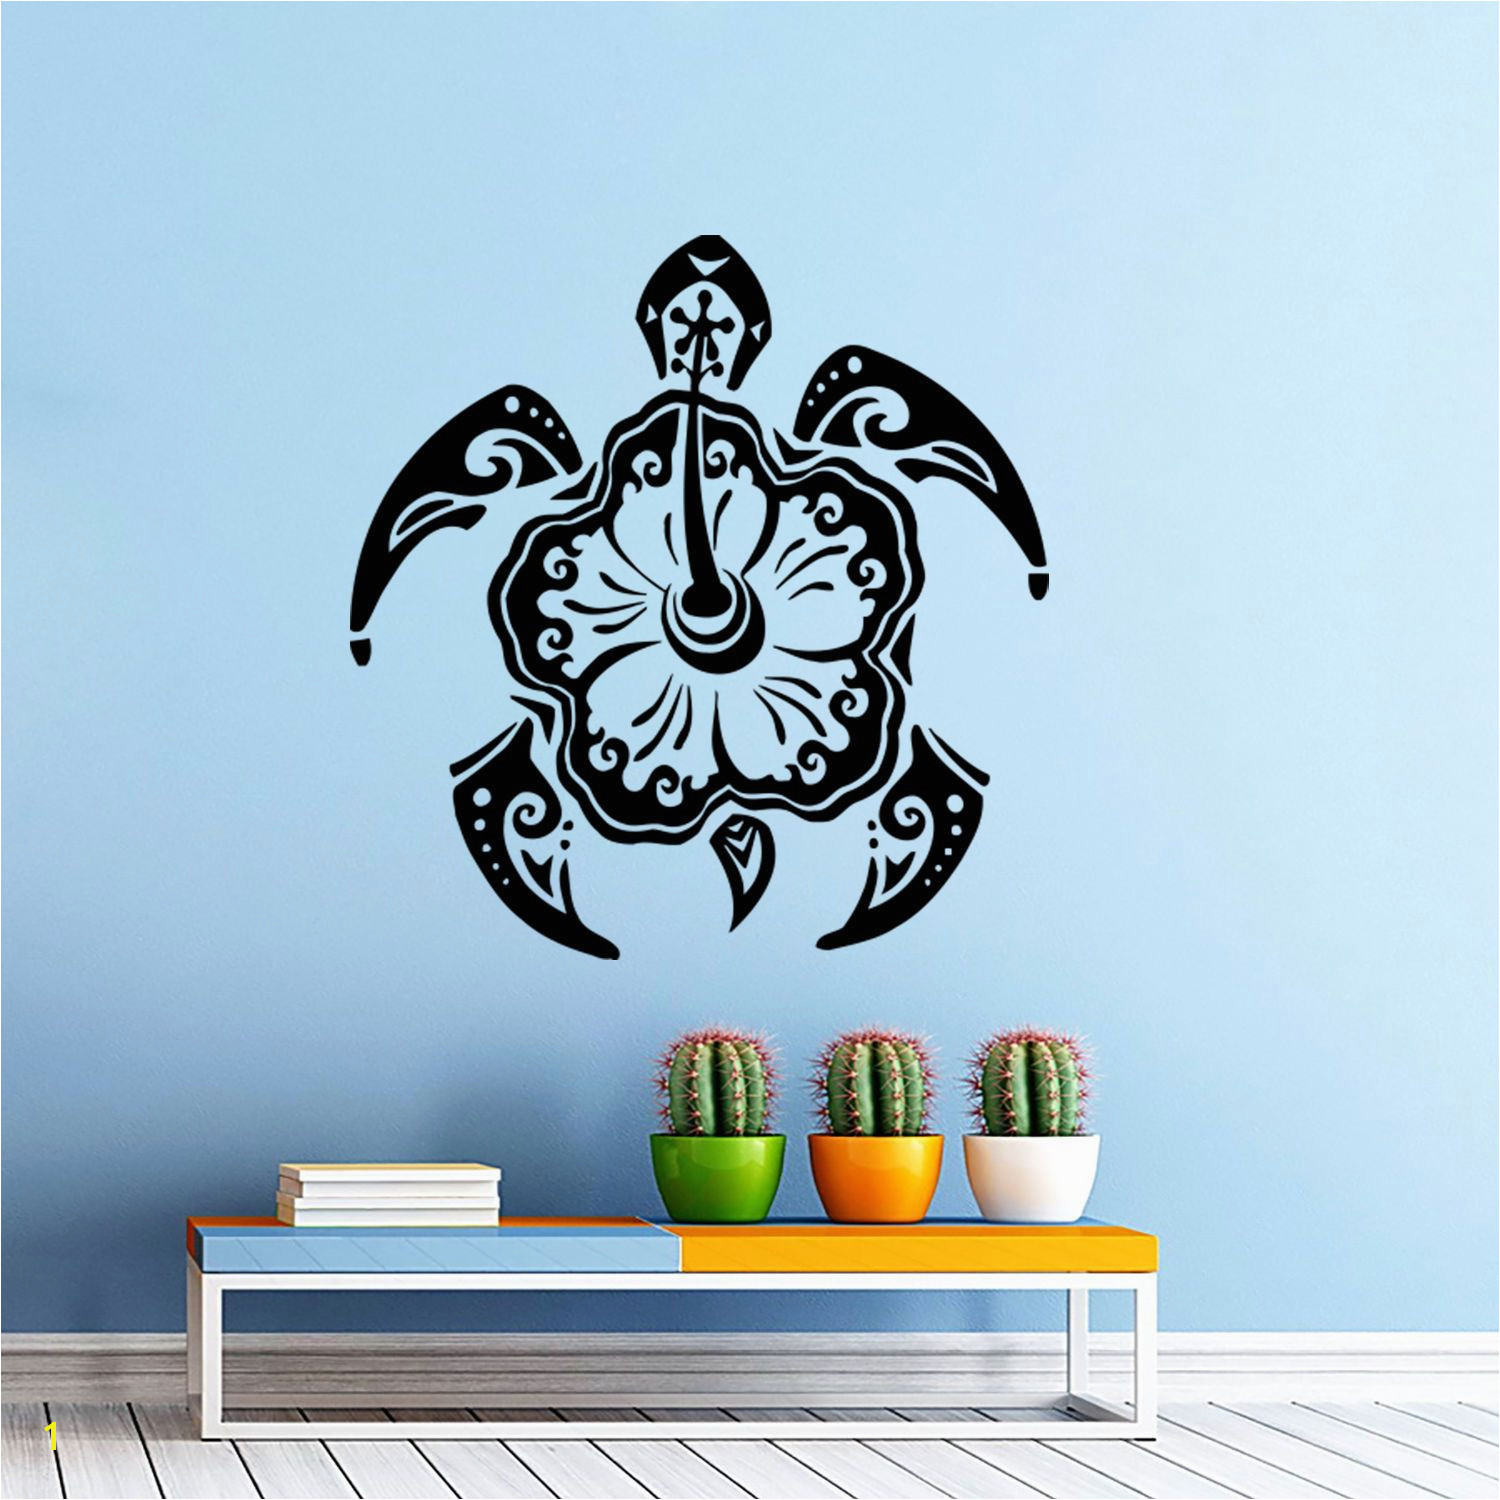 Wall Decal Turtle Animal Stickers Hawaiian Style Bathroom Decor Art Murals D553